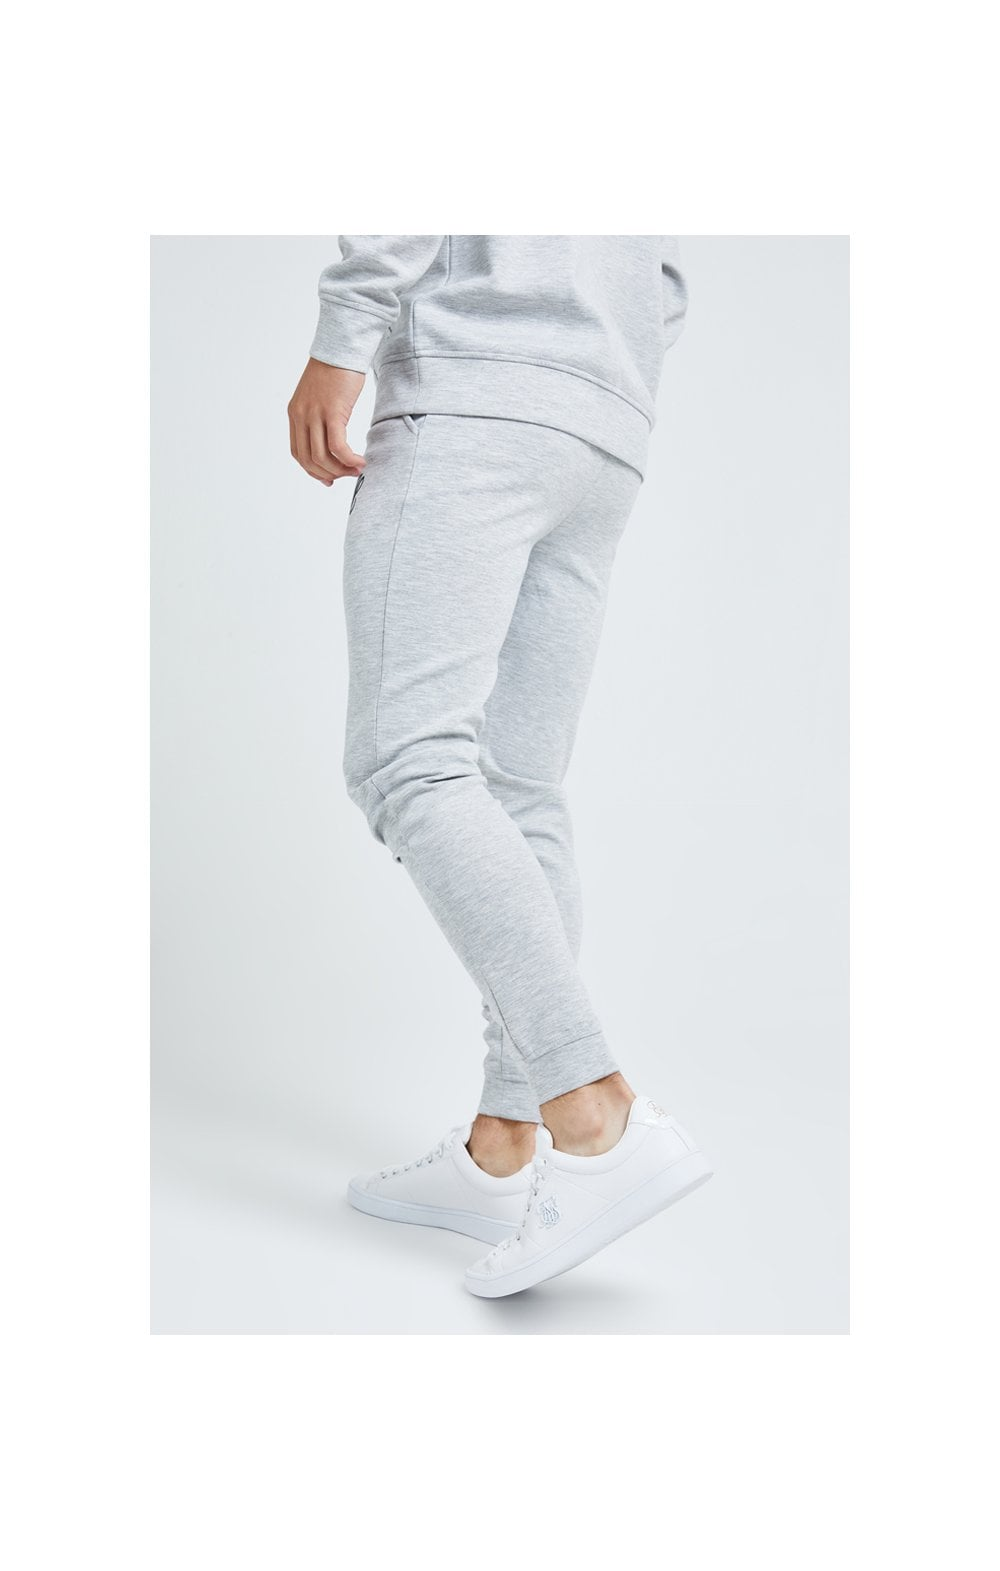 Illusive London Dual Joggers - Grey (3)